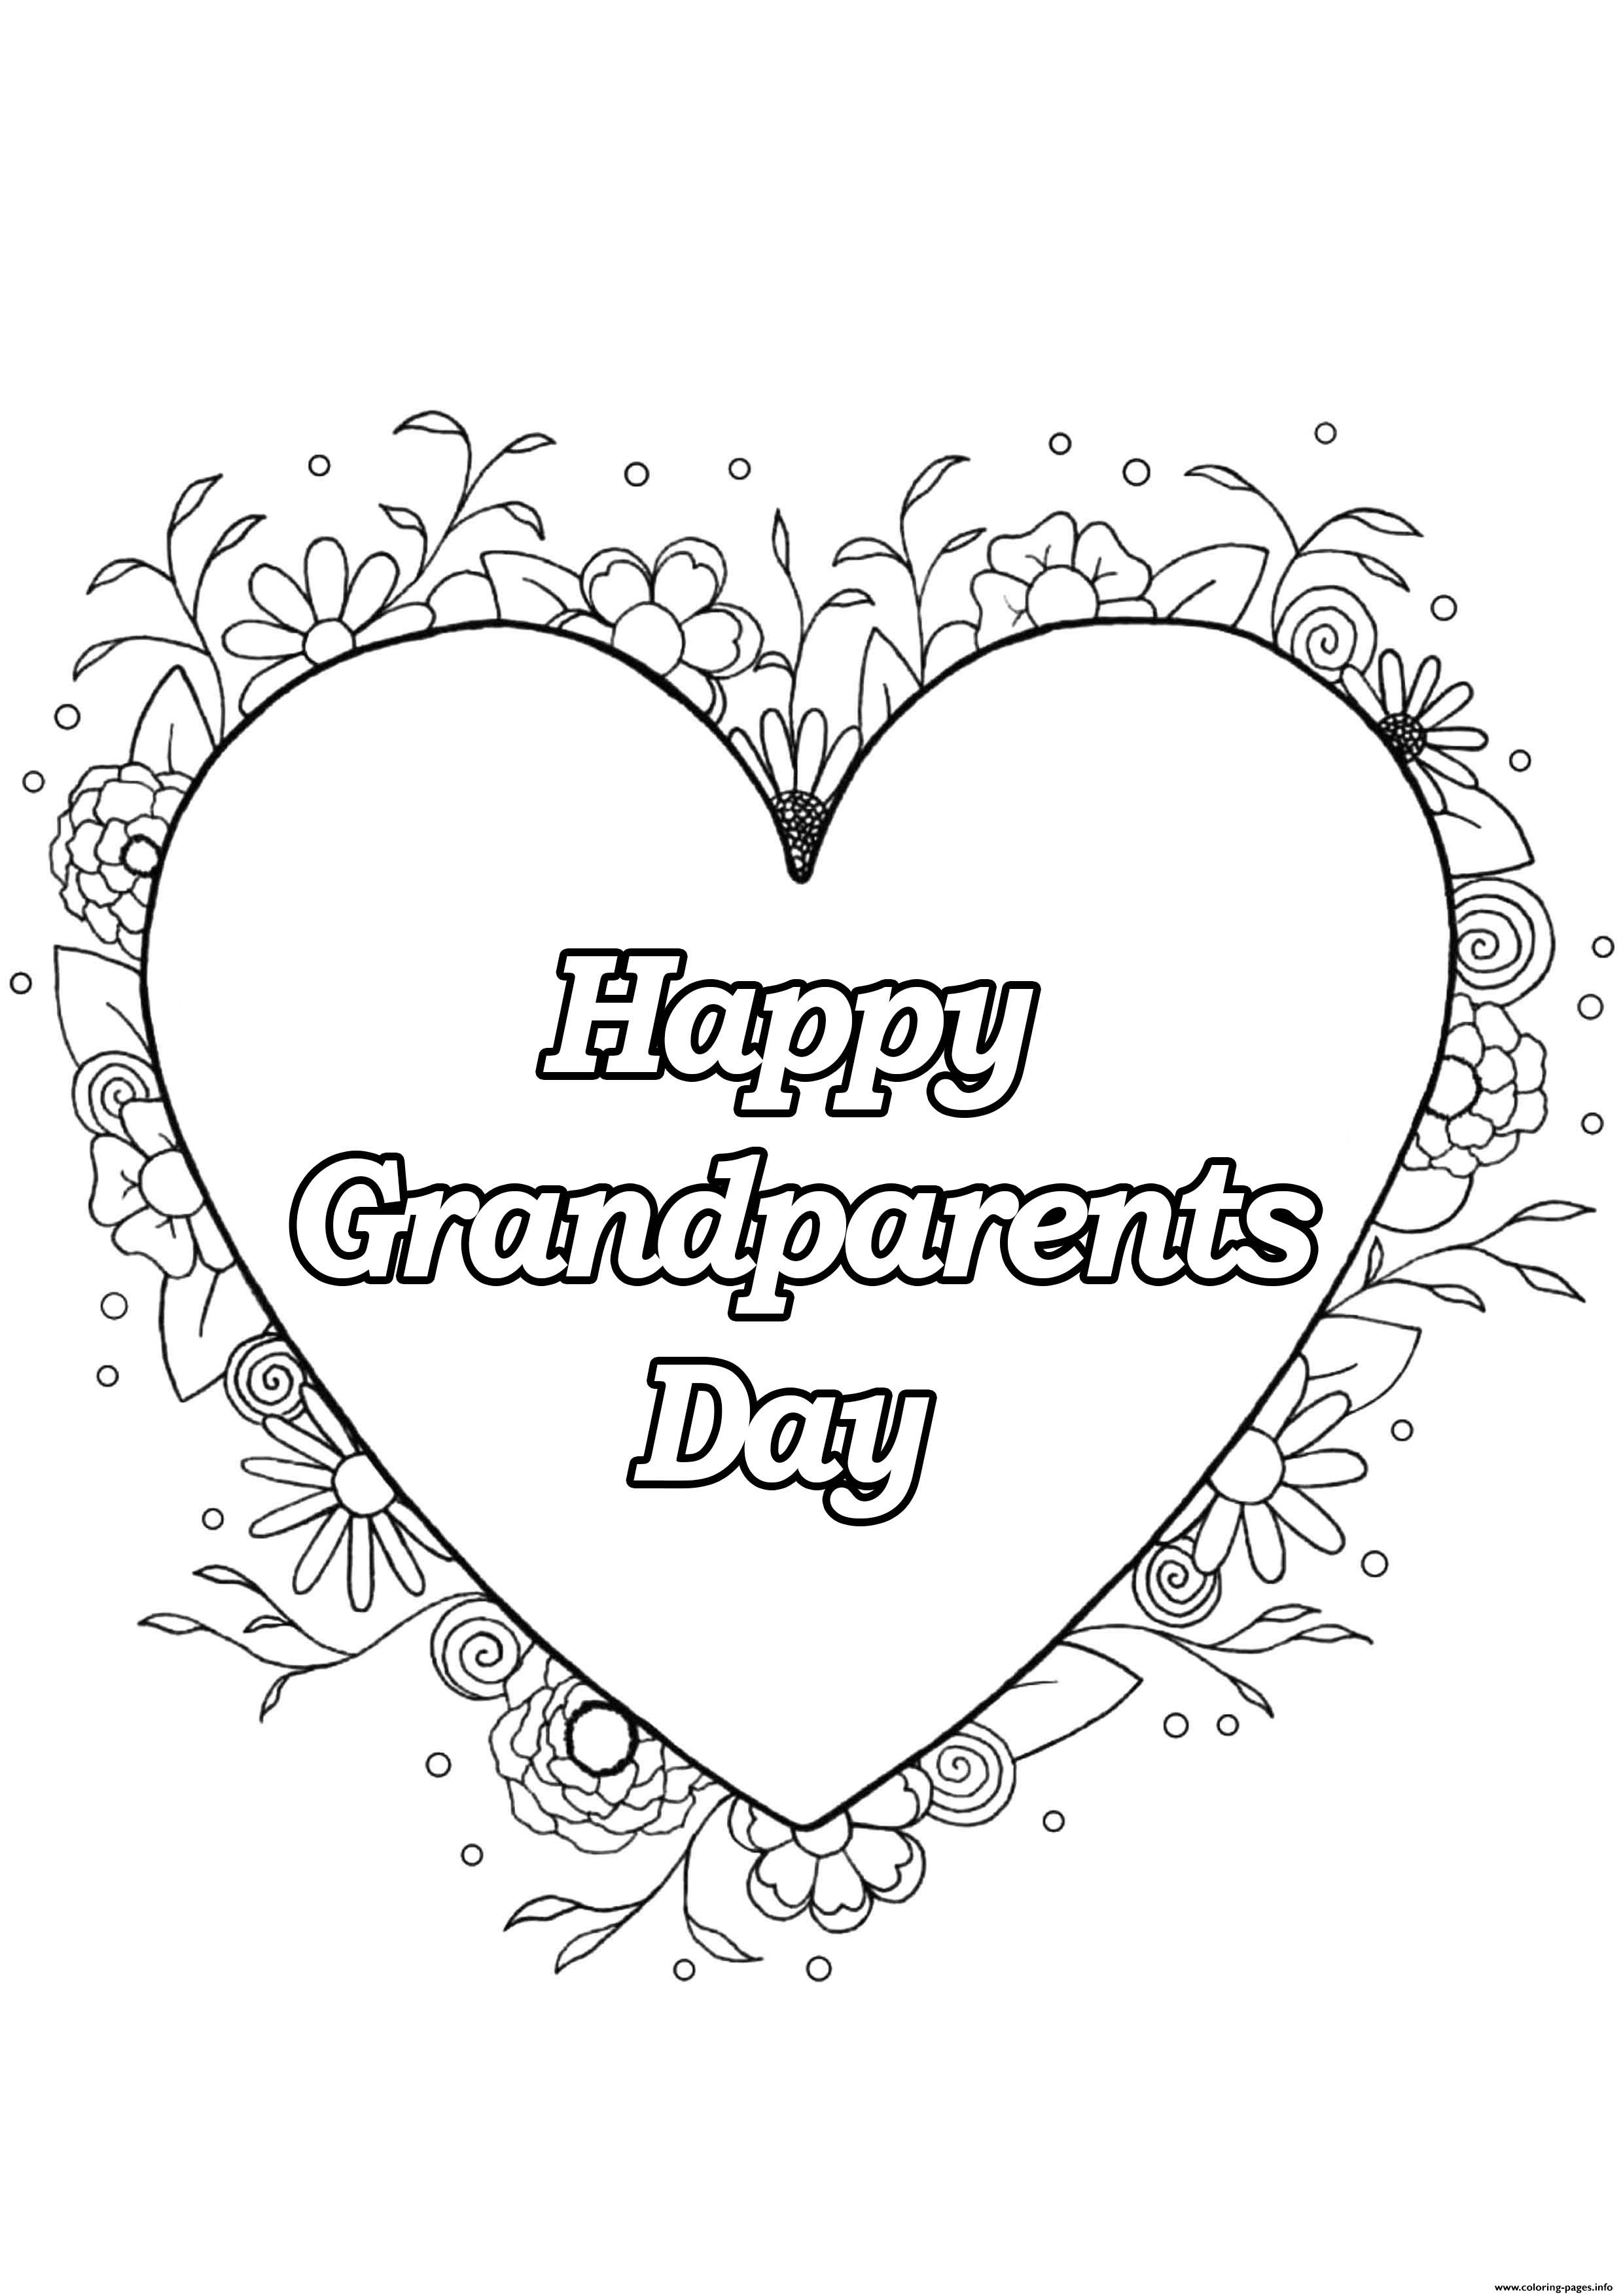 Heart Grandparents Day Love Coloring Pages Printable